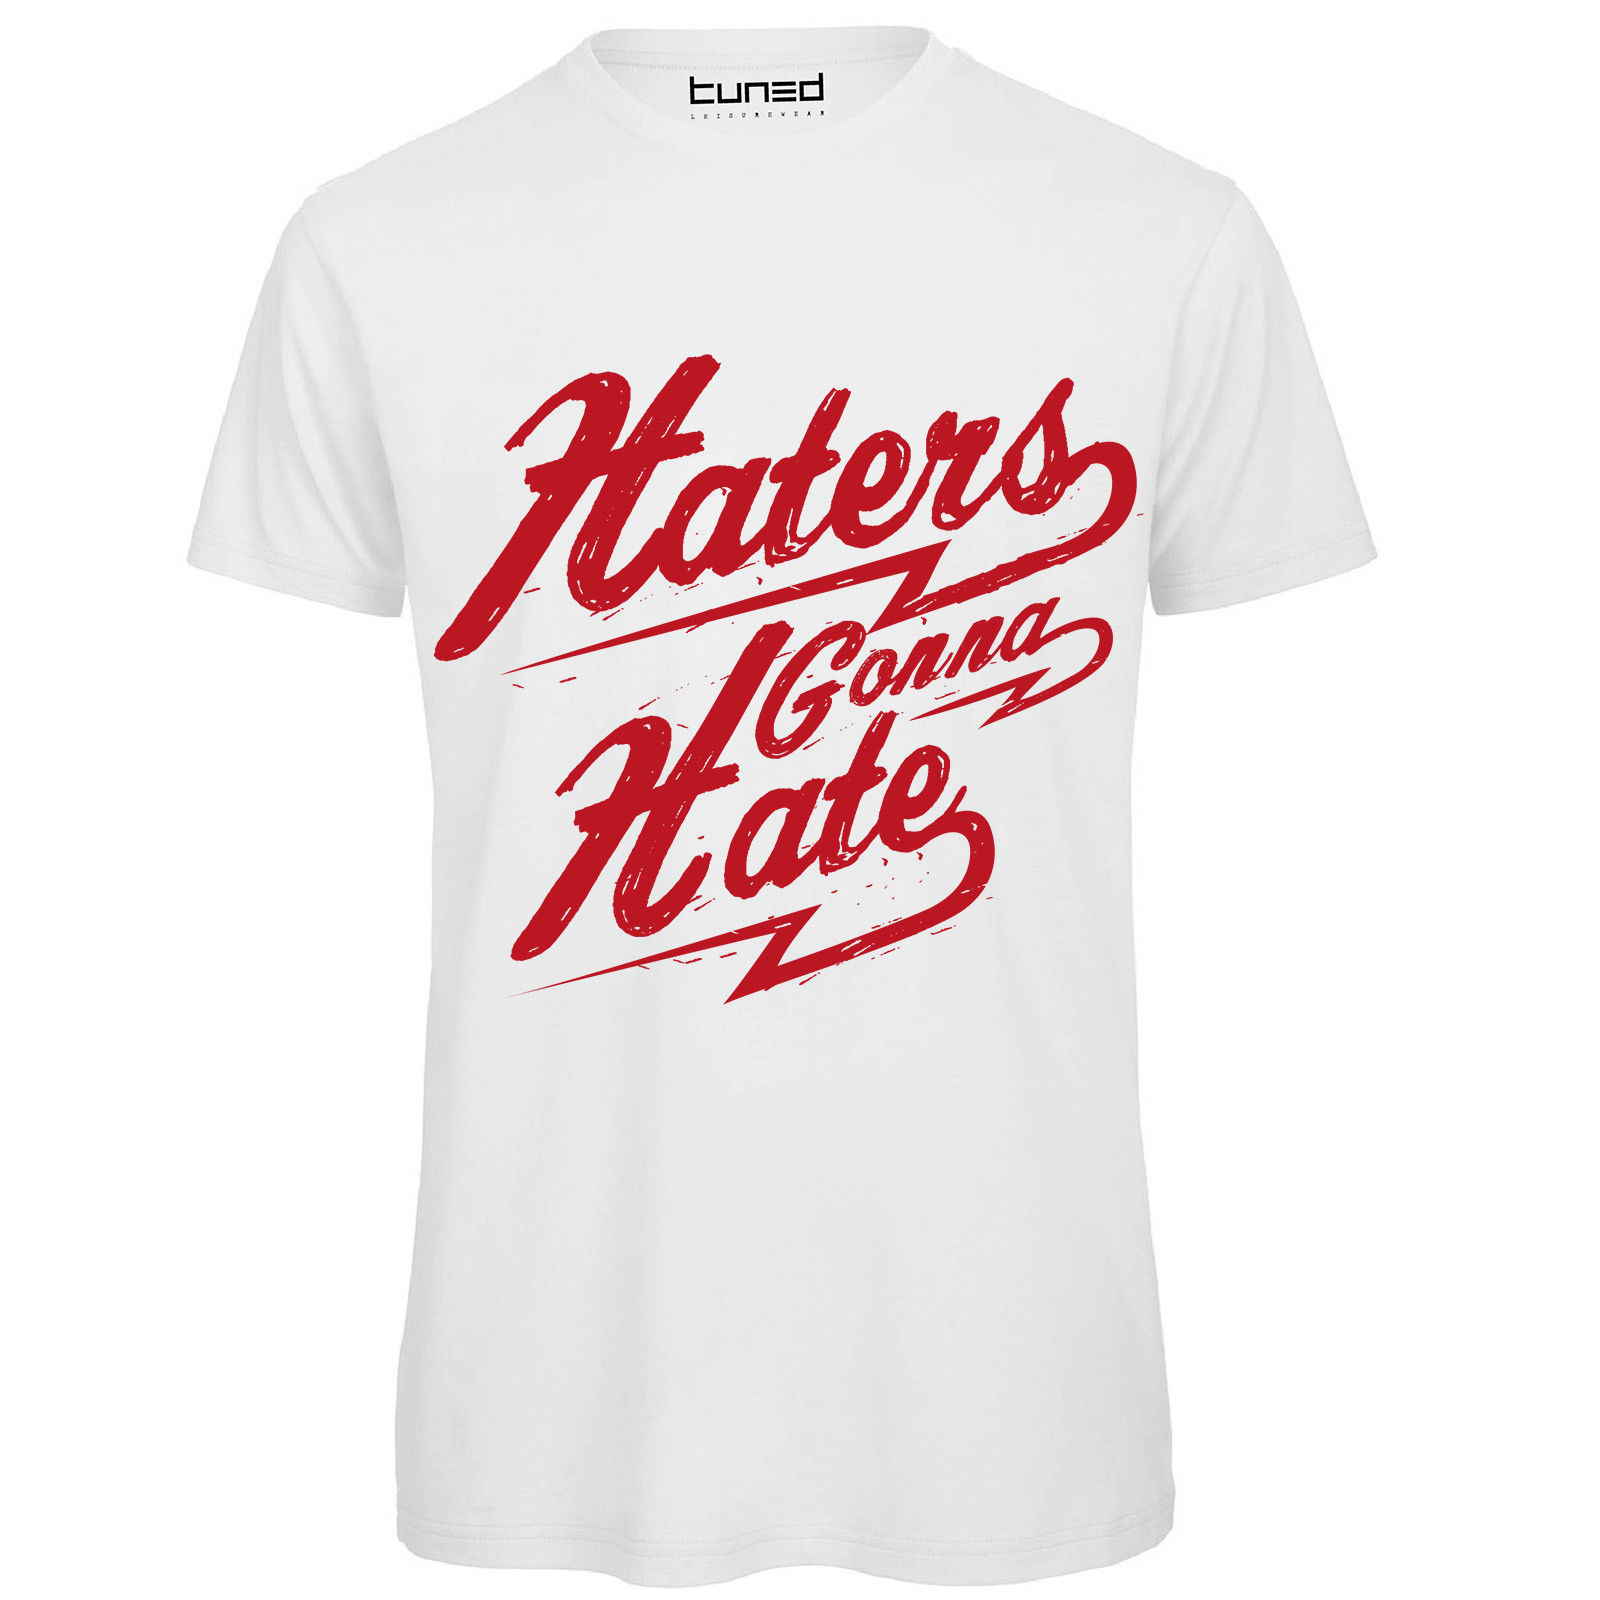 separation shoes 95a4a 42cd9 US $13.04 13% OFF T Shirt Divertente Uomo Maglietta Con Stampa Tormentoni  Social Haters Gonna Hate Sale 100 % Cotton T Shirt TOP TEE-in T-Shirts from  ...